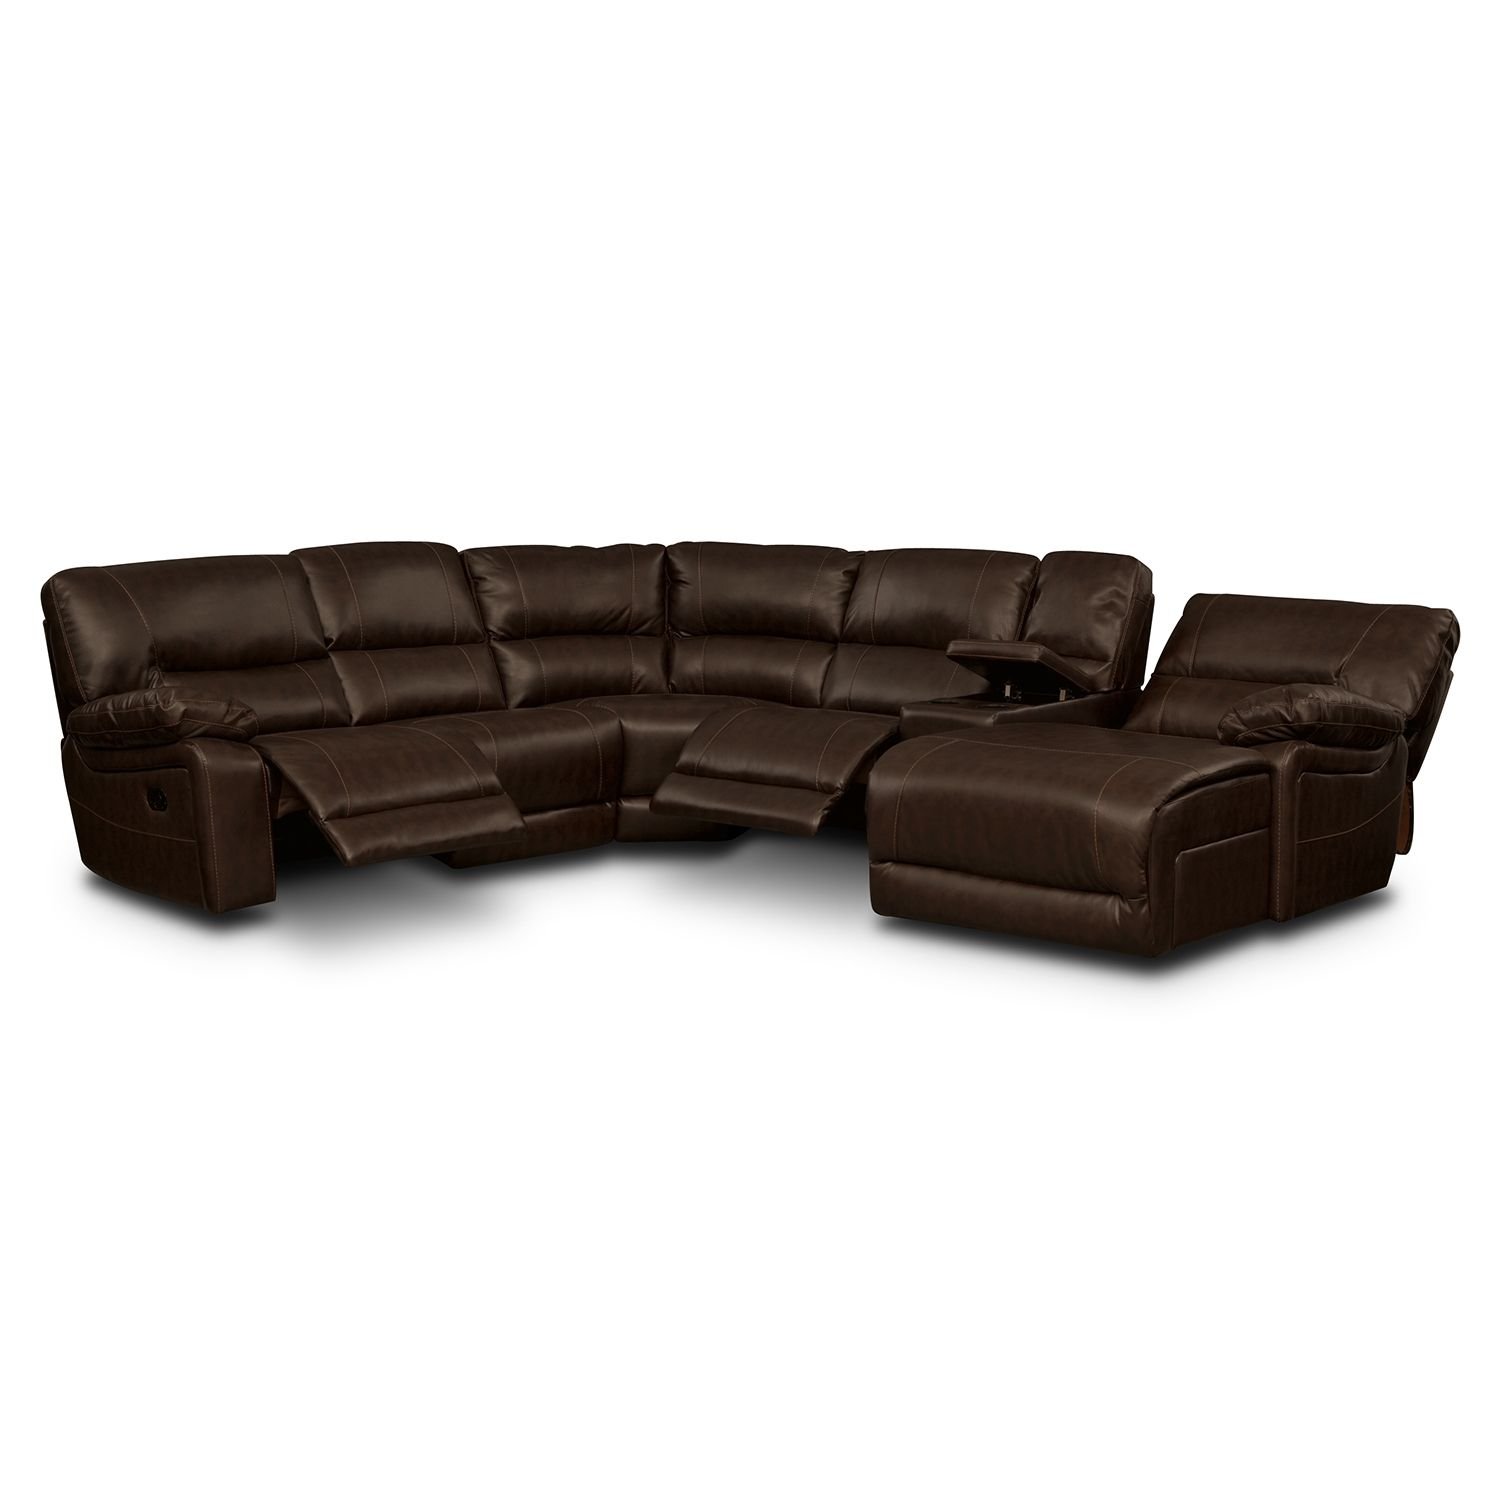 Wyoming Godiva 5 Pc Reclining Sectional American